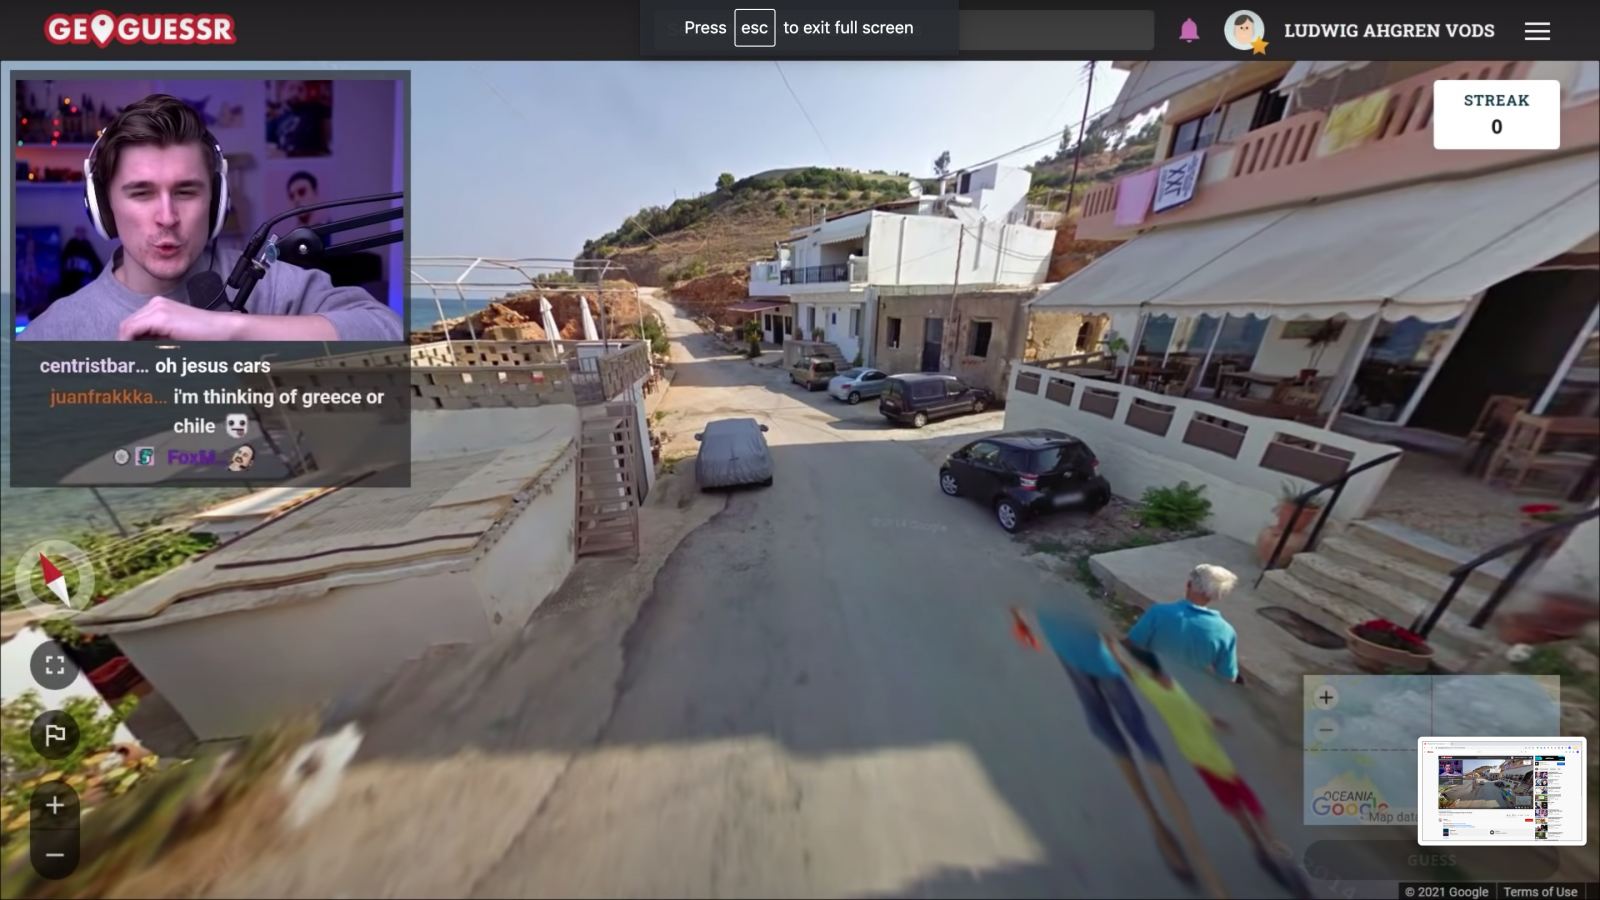 Zanzibar's project to put itself on Google Street View has angered a legion of European video game streamers